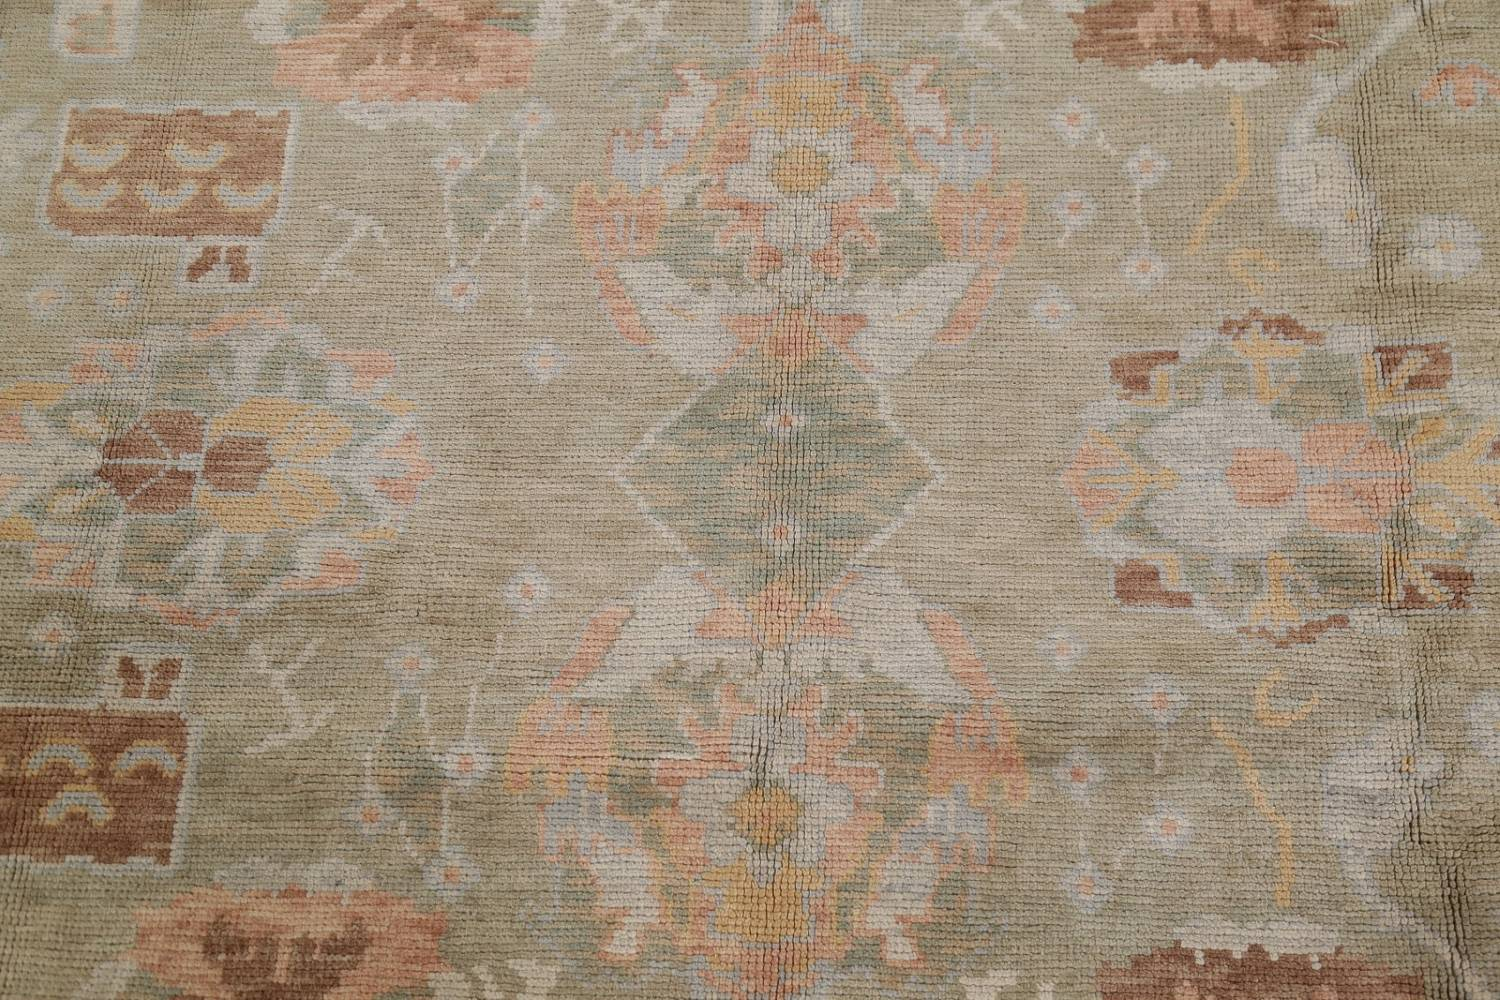 Vegetable Dye Muted Green Oushak Turkish Hand-Knotted Area Rug 9x12 image 9